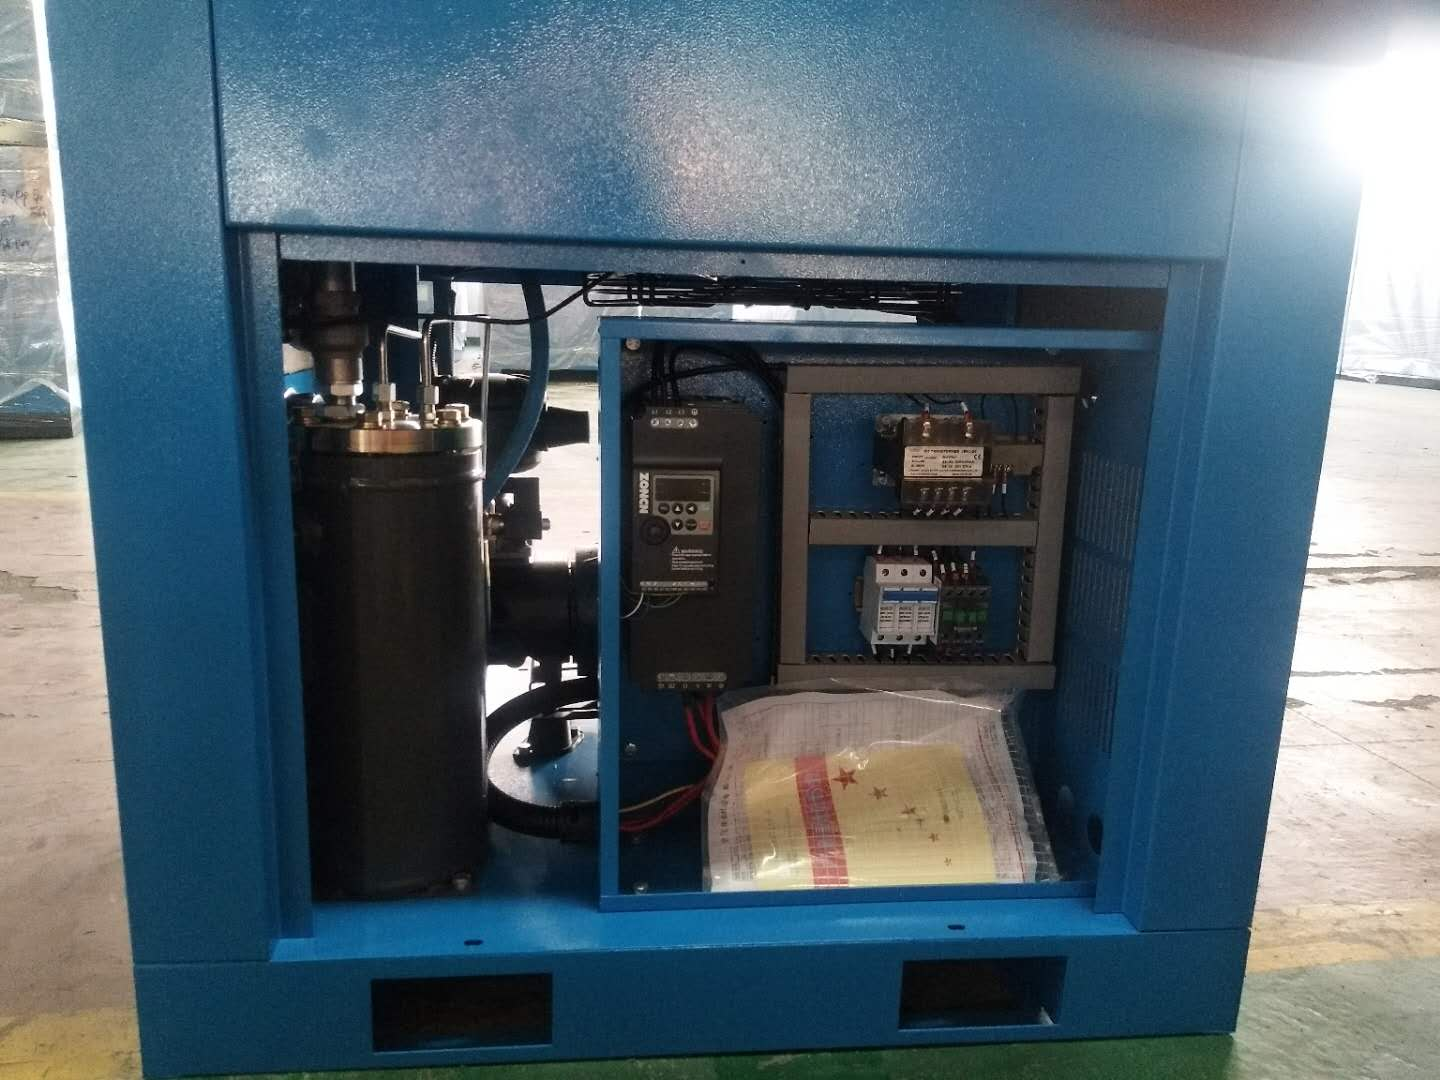 air cooling save 50% energy screw air compressor 7.5kw 10hp